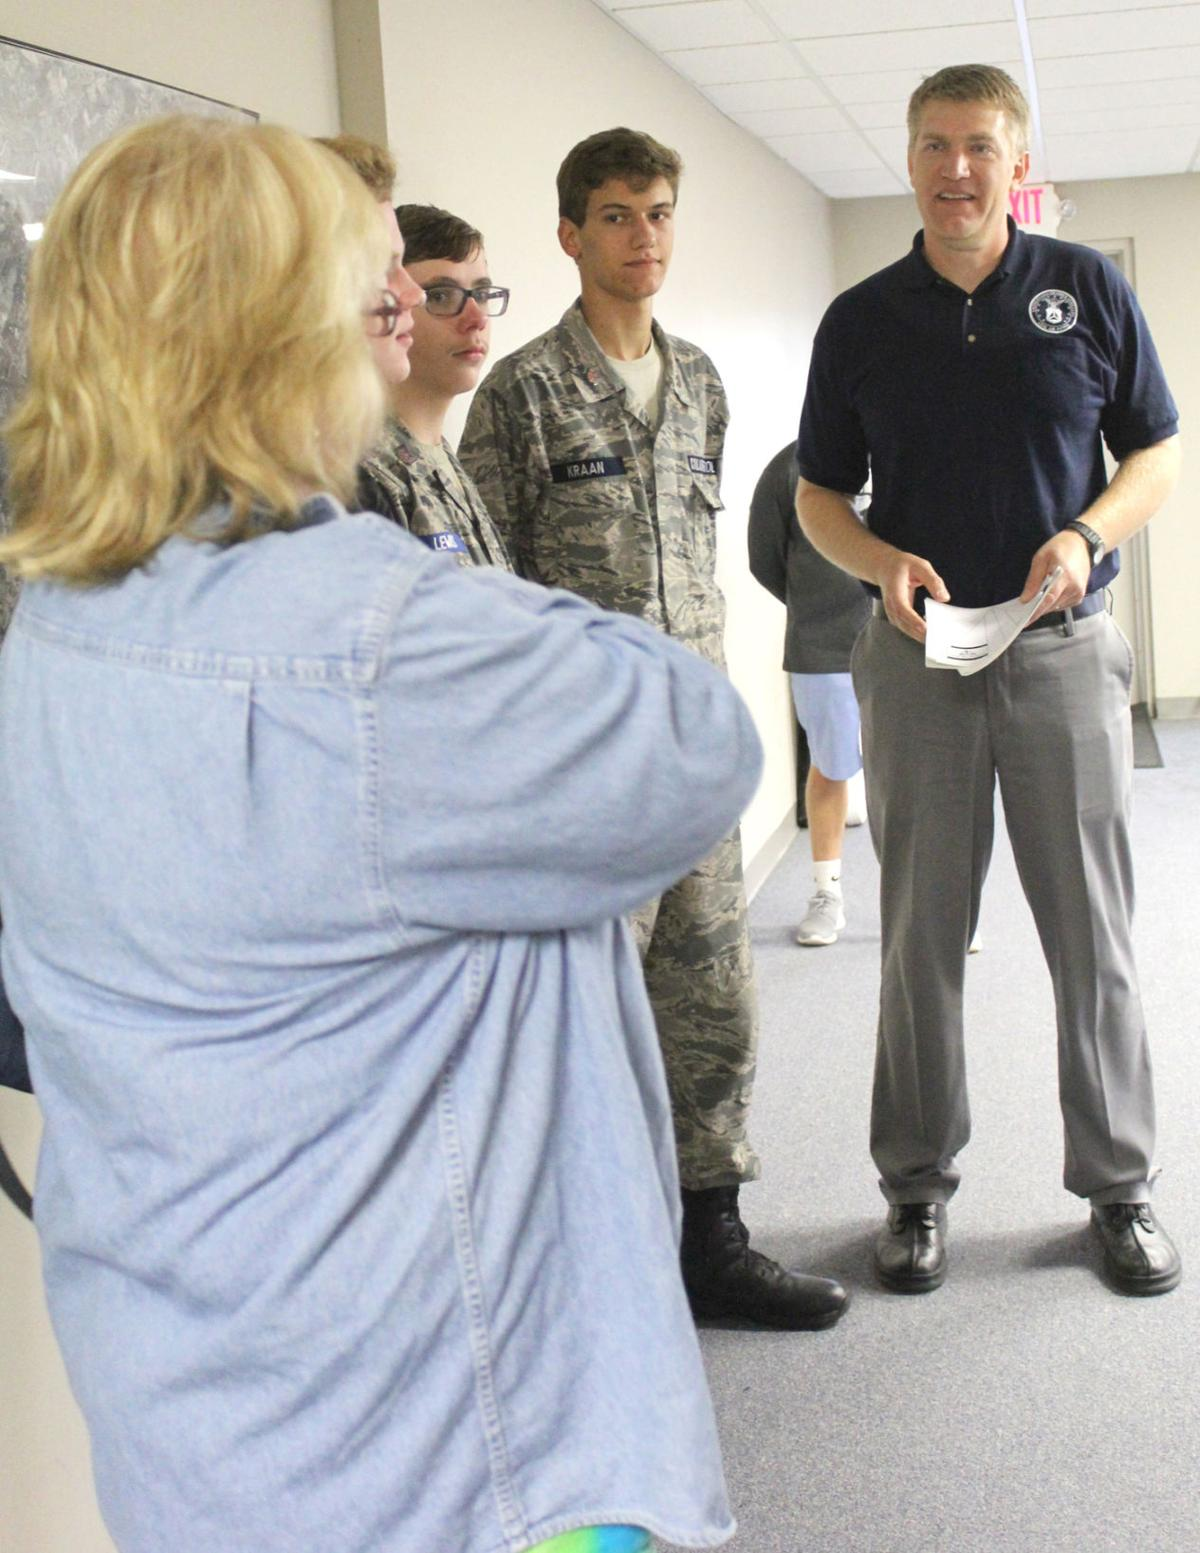 Civil Air Patrol offers youth the opportunity to learn, grow